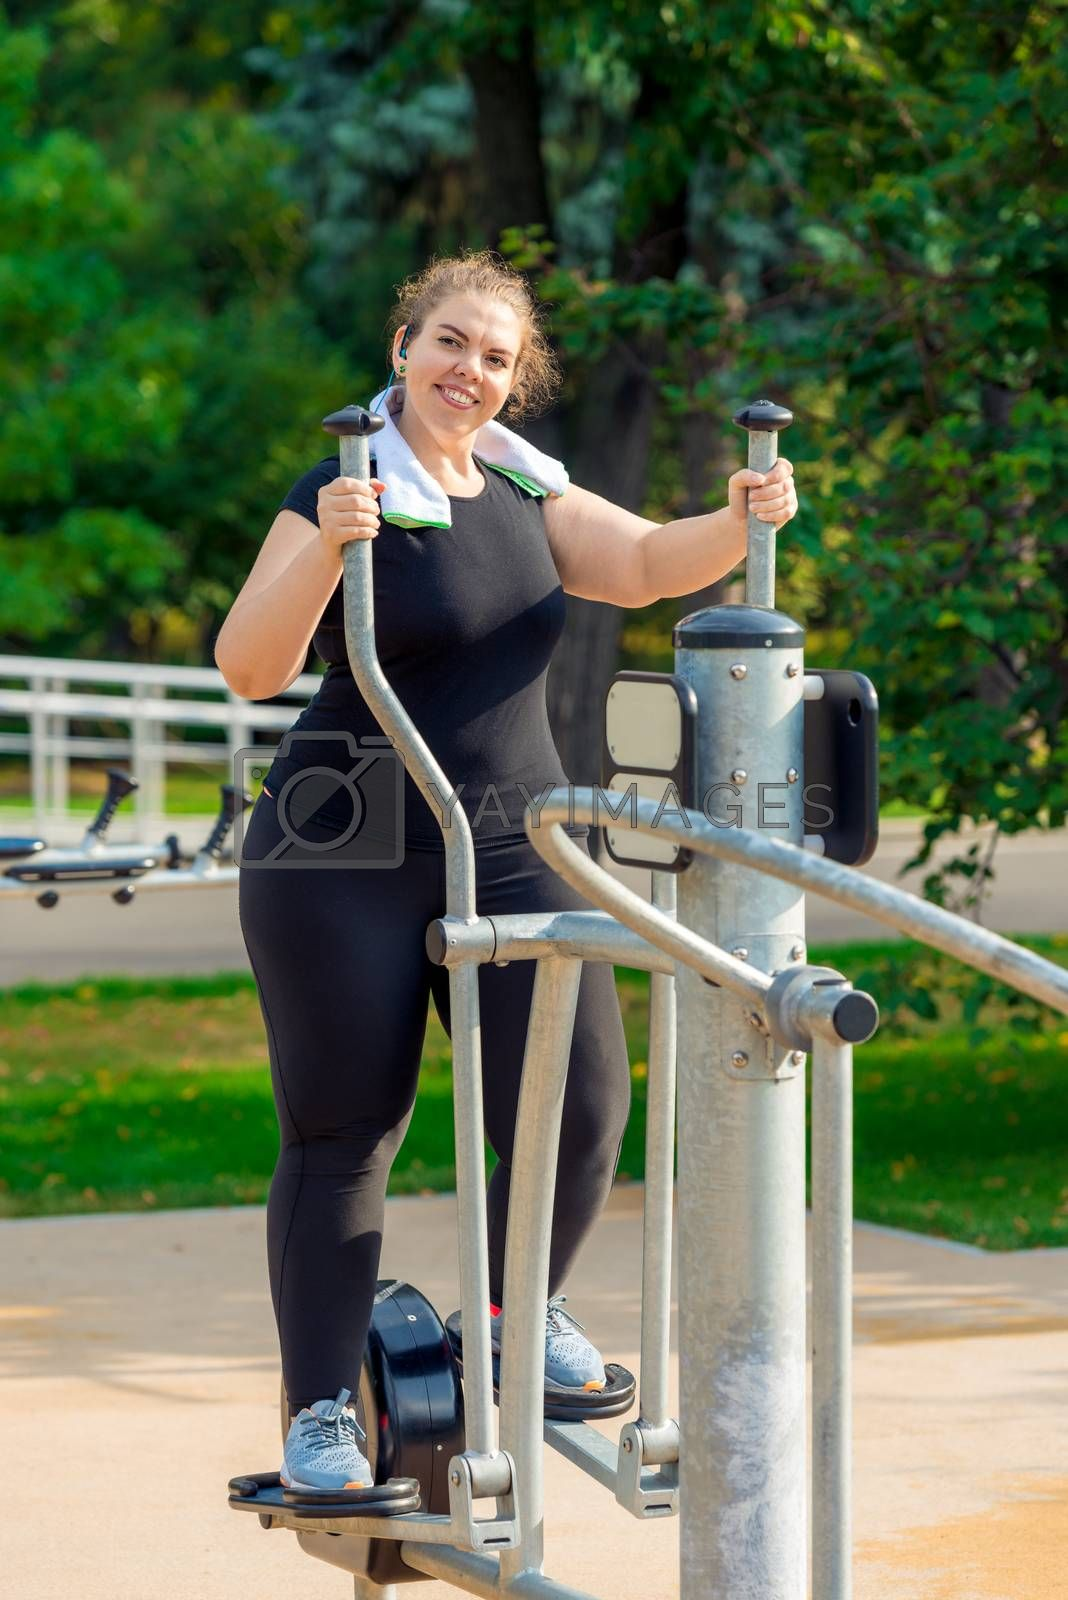 portrait of a young active fat woman engaged on a stepper simula by Labunskiy K.